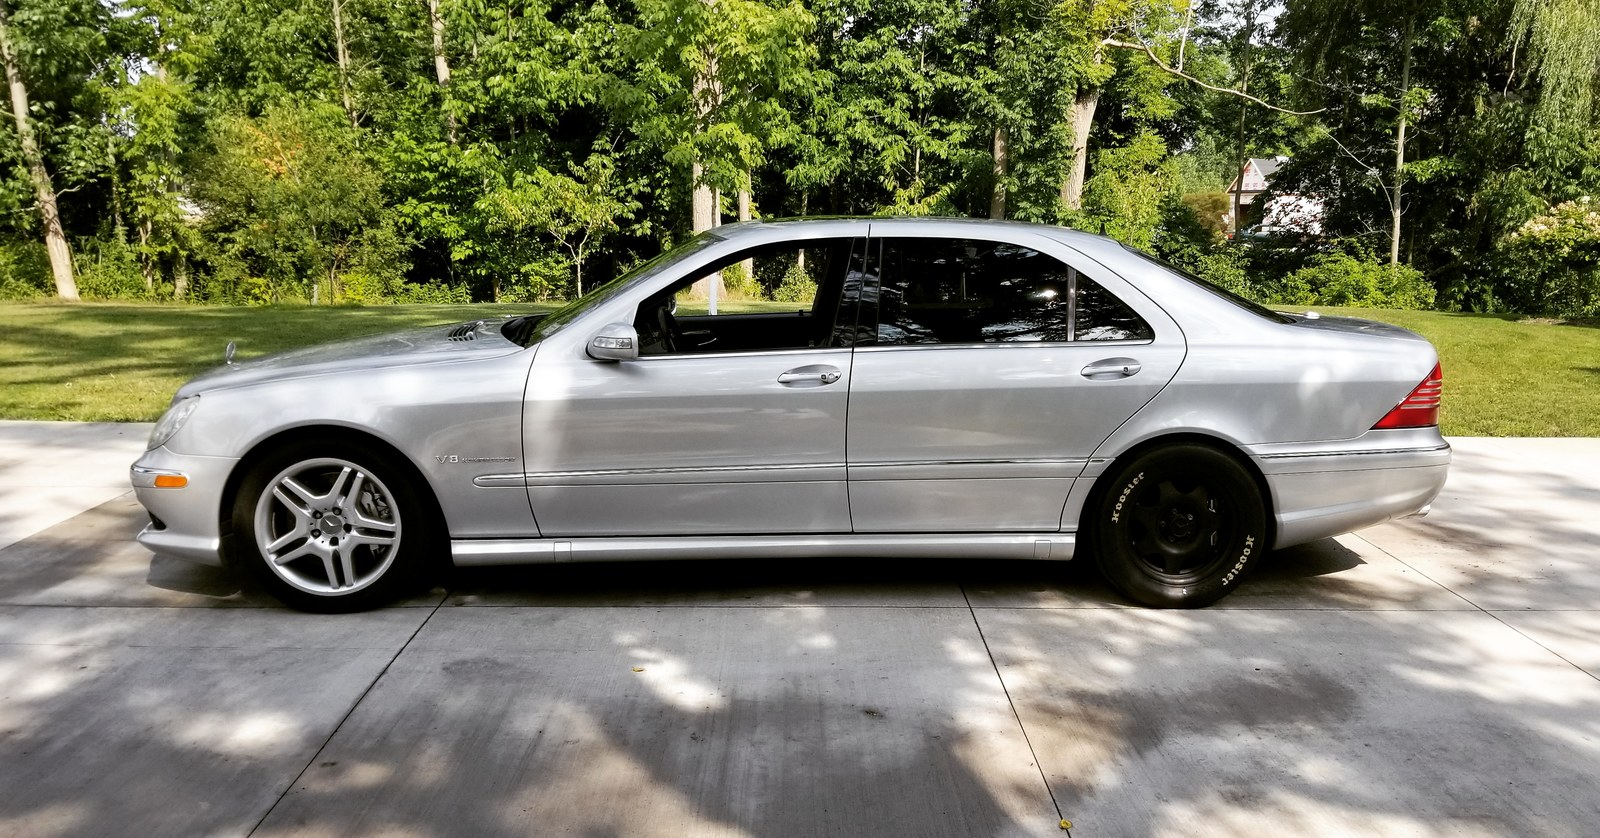 S 2005 Mercedes-Benz S55 AMG AMG